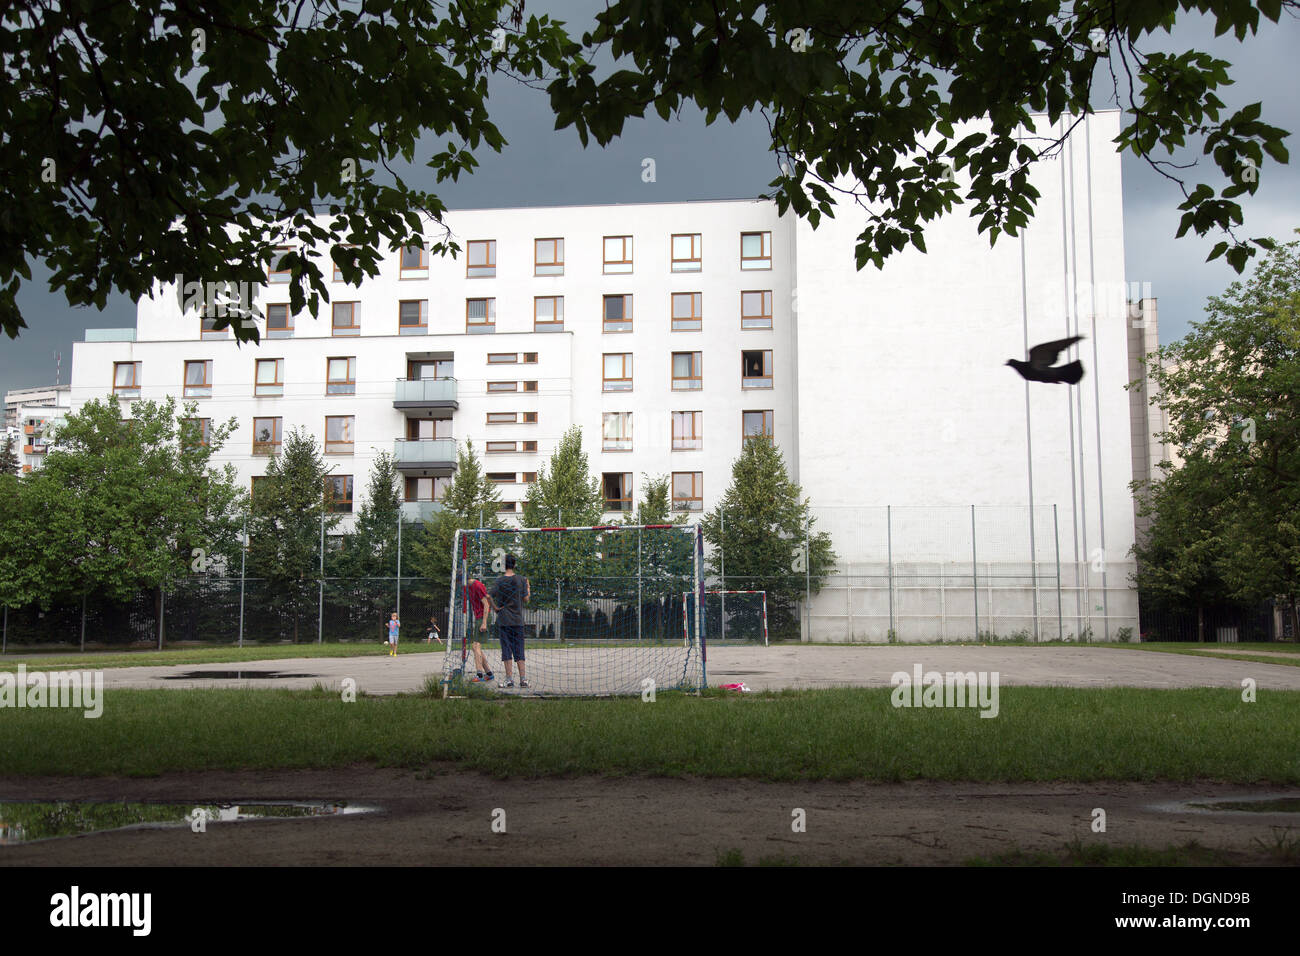 Warsaw, Poland, boys play football in their spare time on a school playground - Stock Image